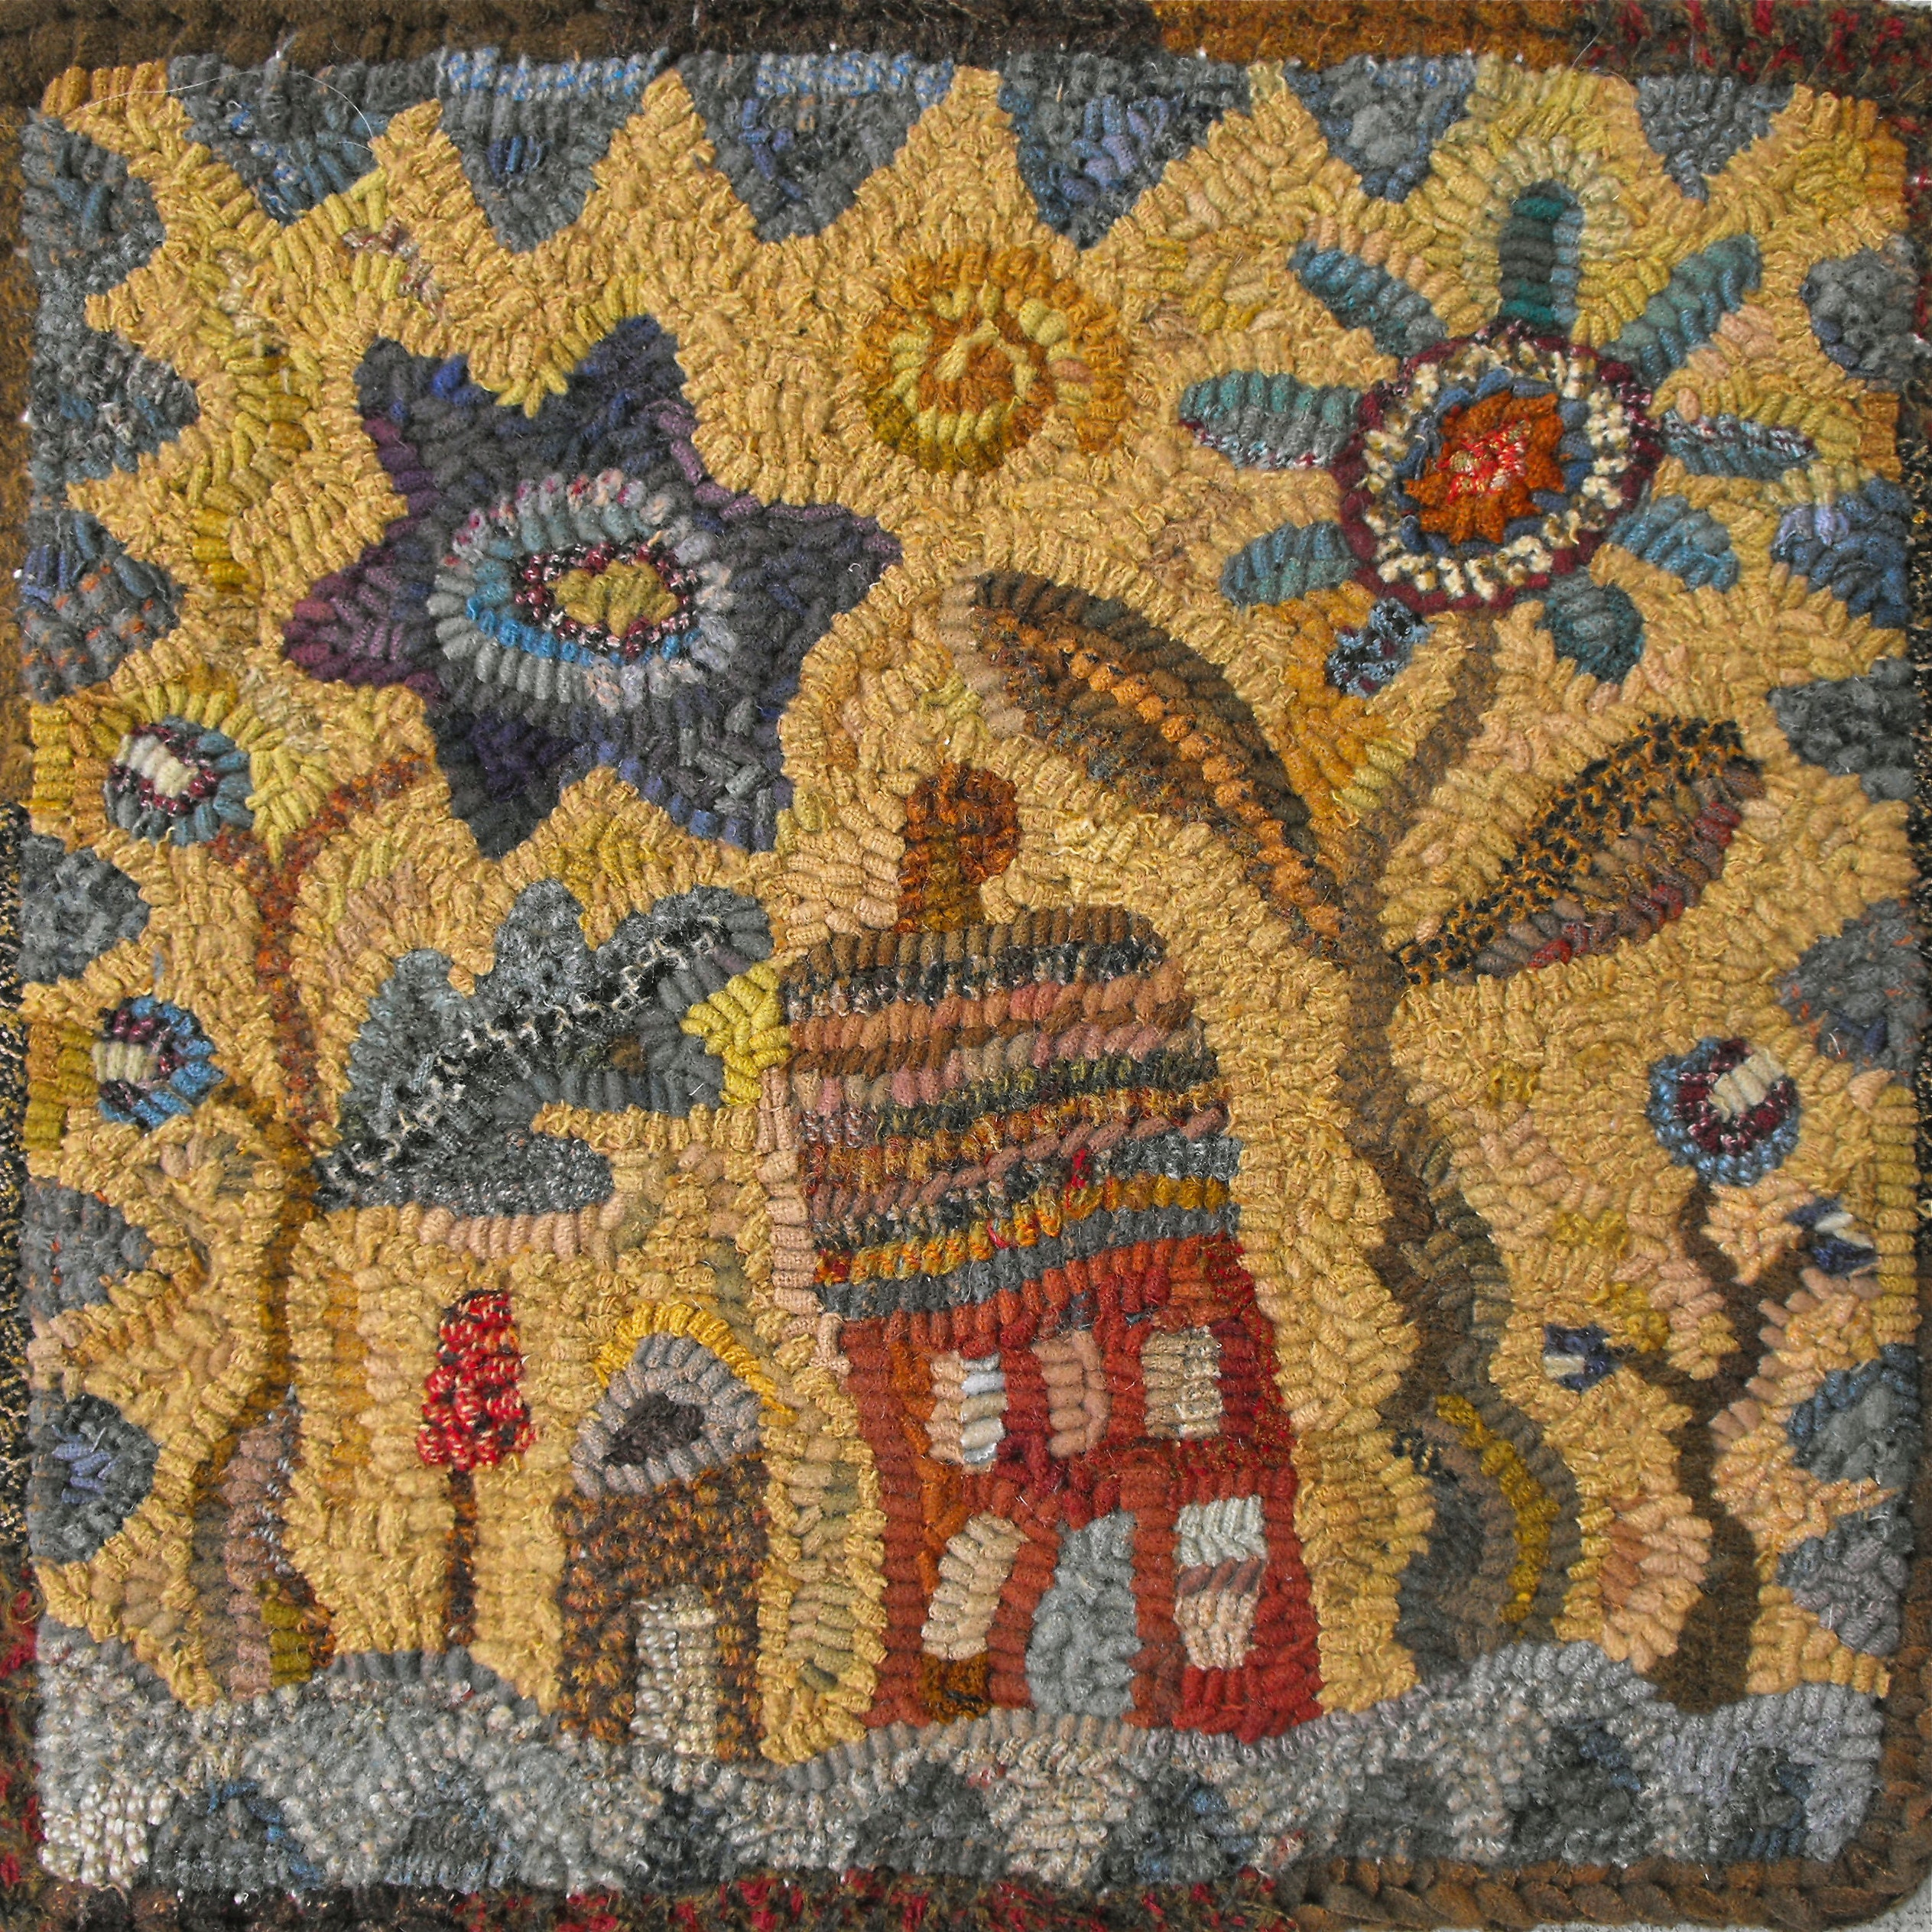 Primitive Patterns For Rug Hooking And By Primitivespirit